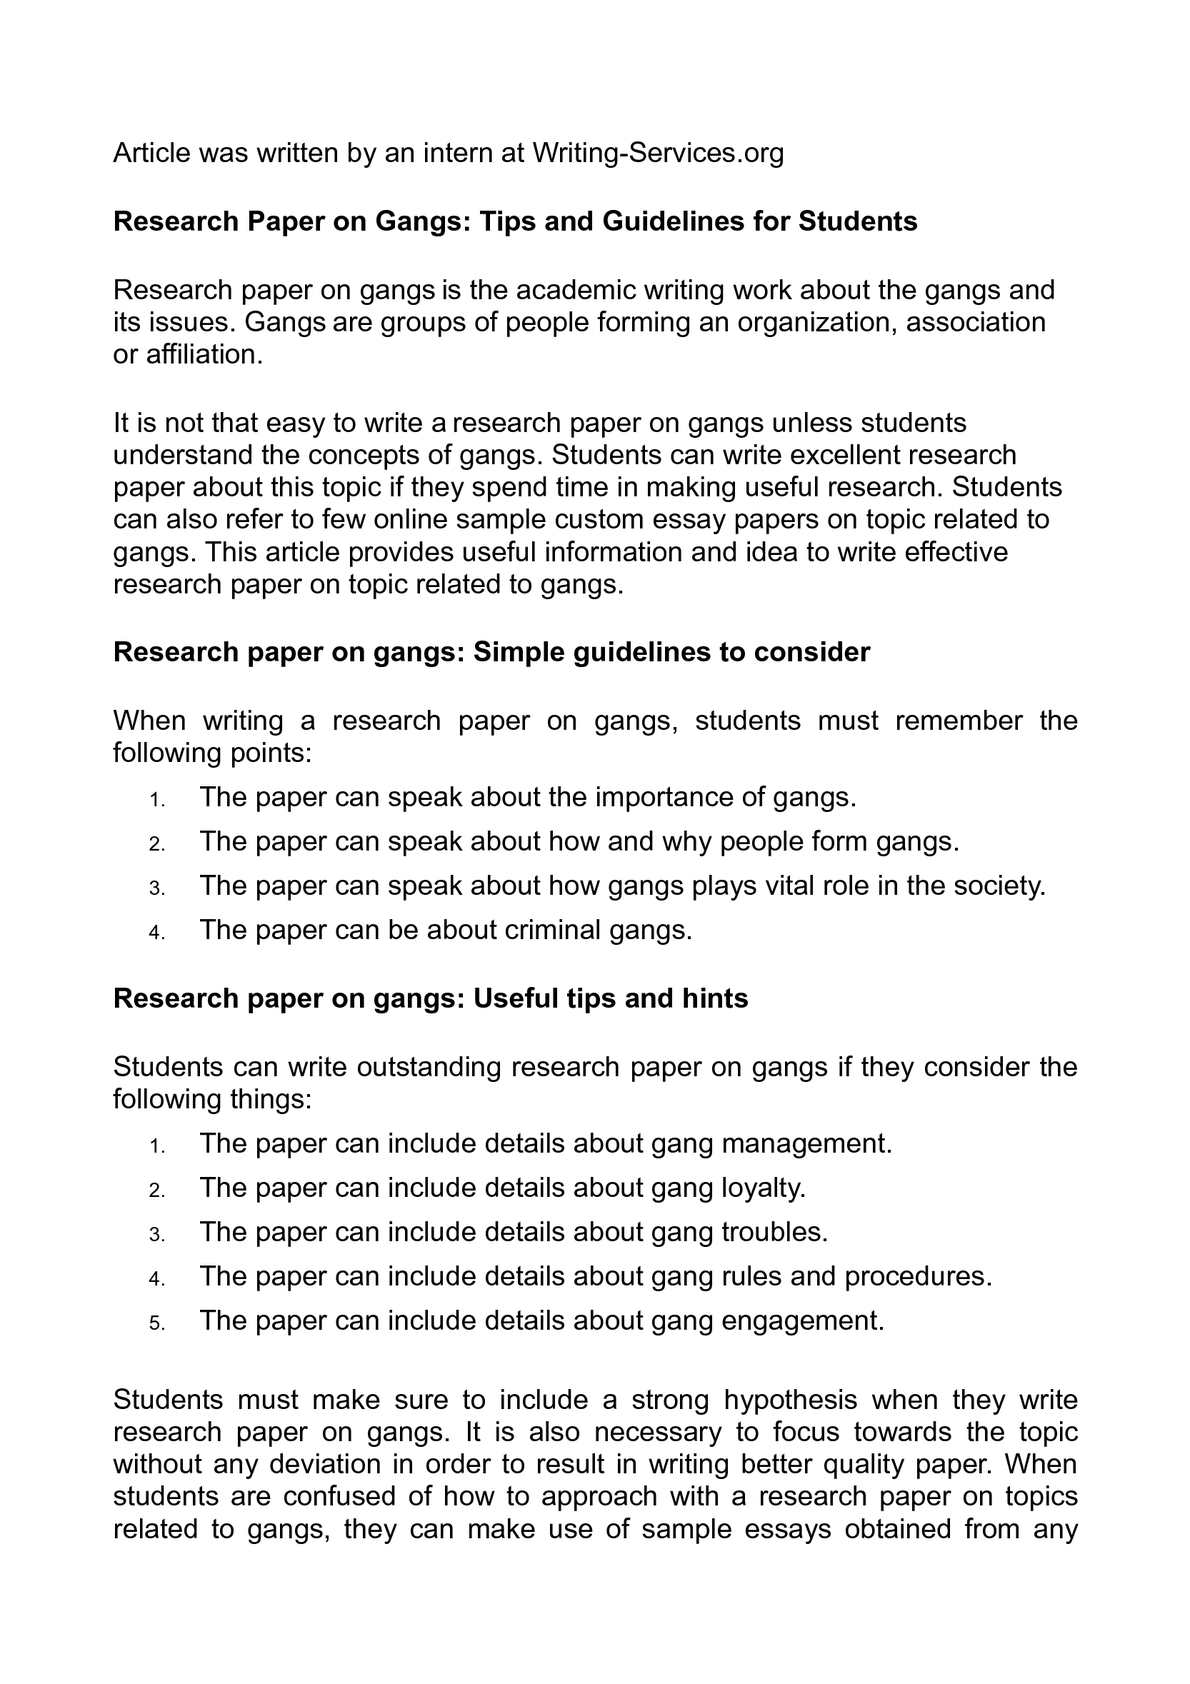 research paper on gangs tips and guidelines for students